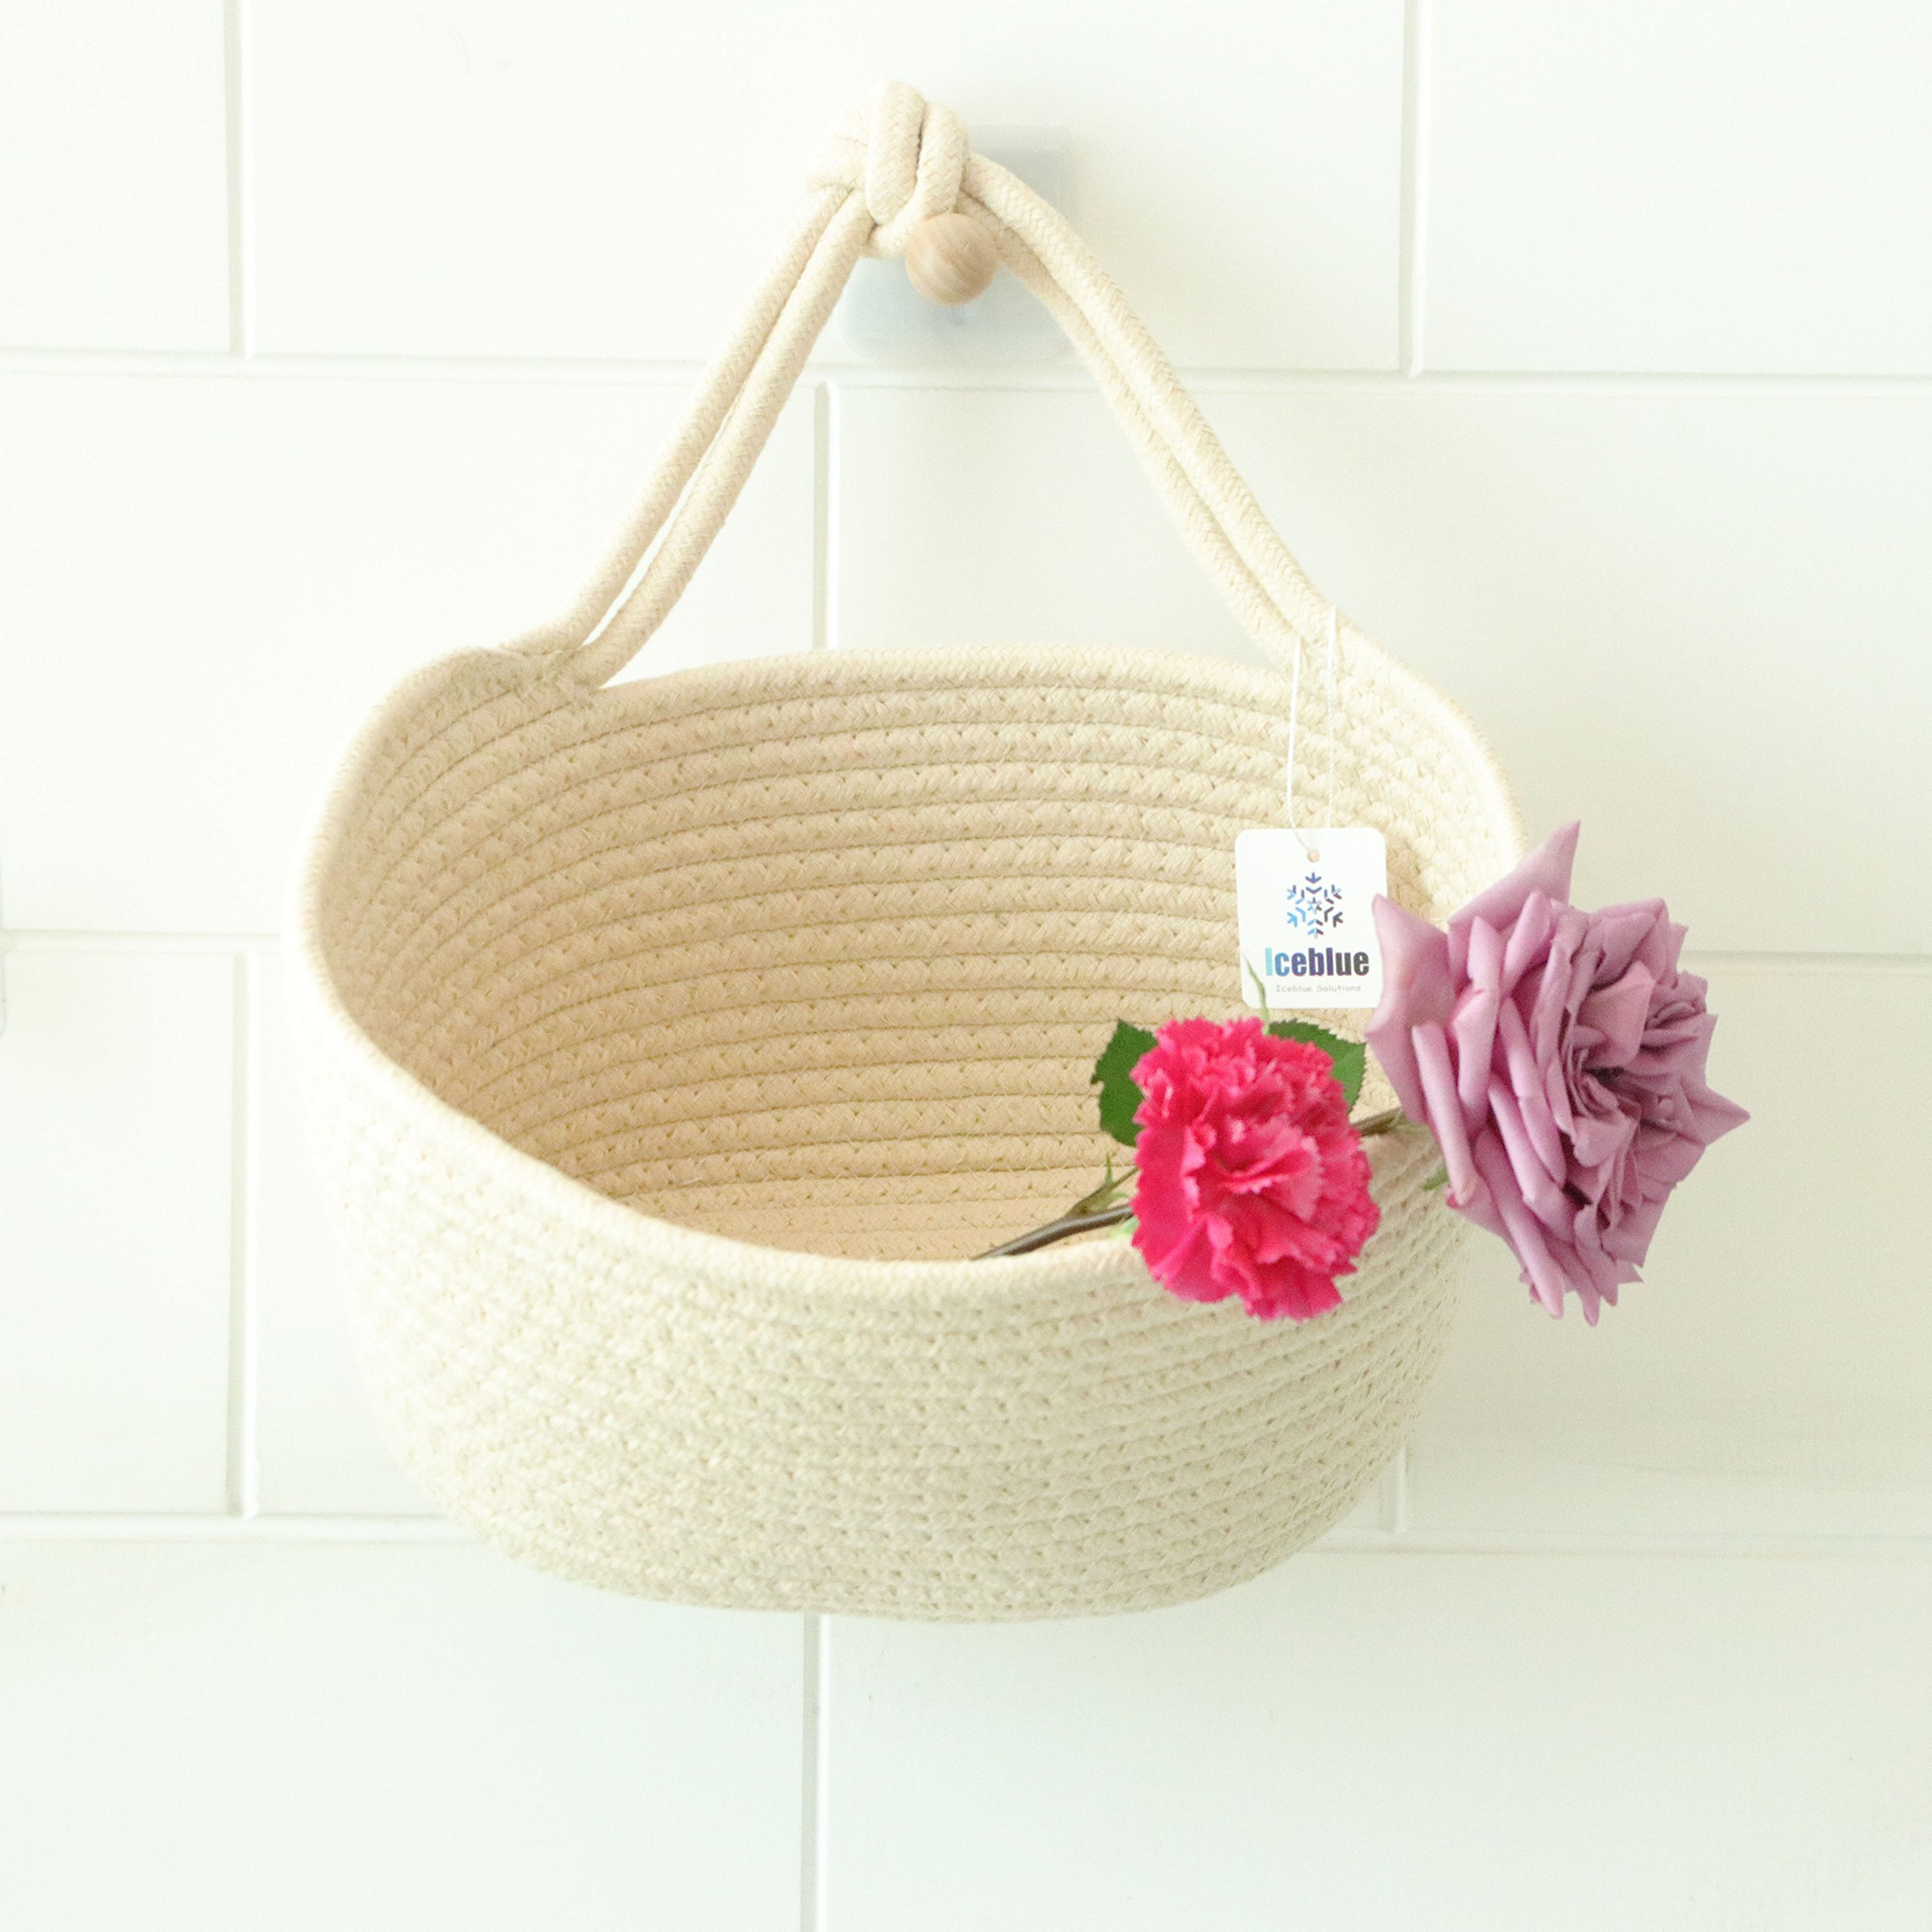 Iceblue 9.8''X5.9''X7''Beige Oval Cotton Rope Over Wall Door Closet Window Hanging Storage Basket by ICEBLUE HD